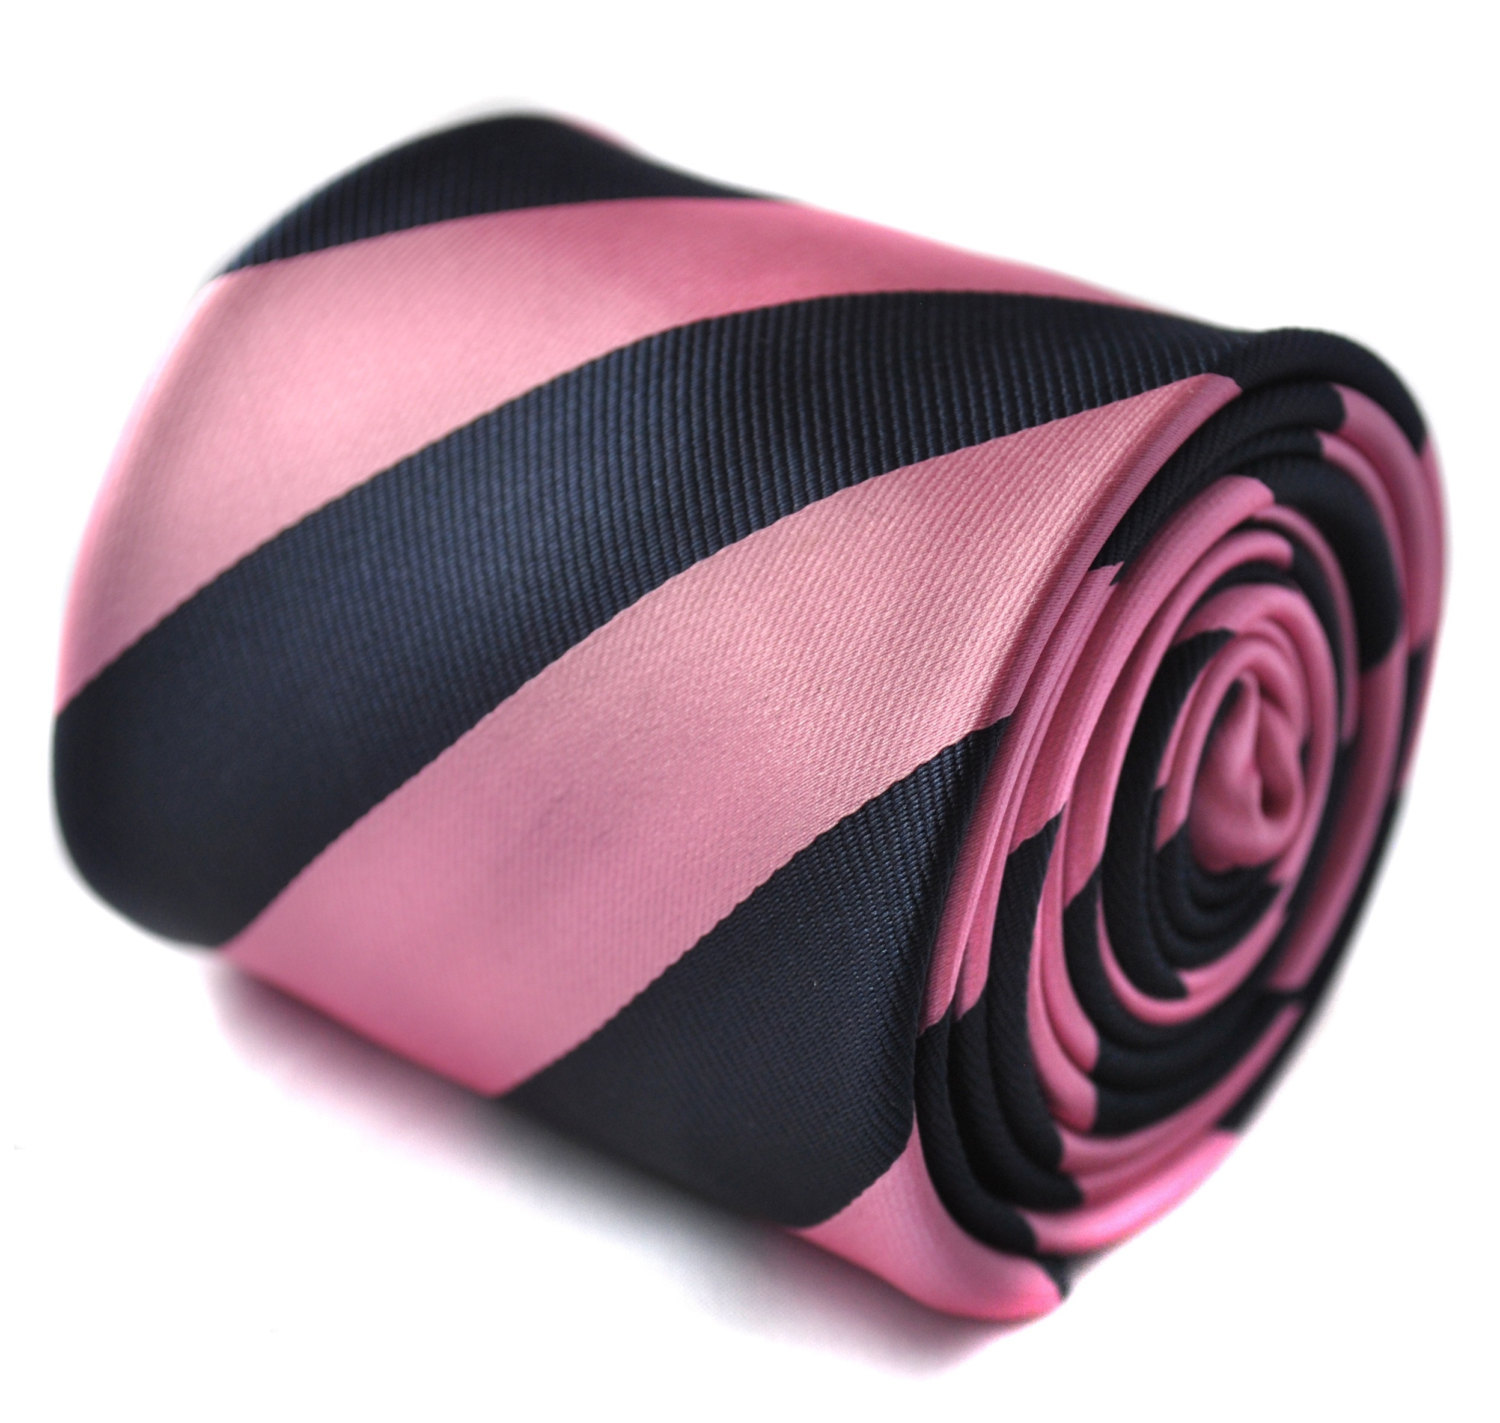 navy and pink barber striped tie with signature floral design to the rear by Fre